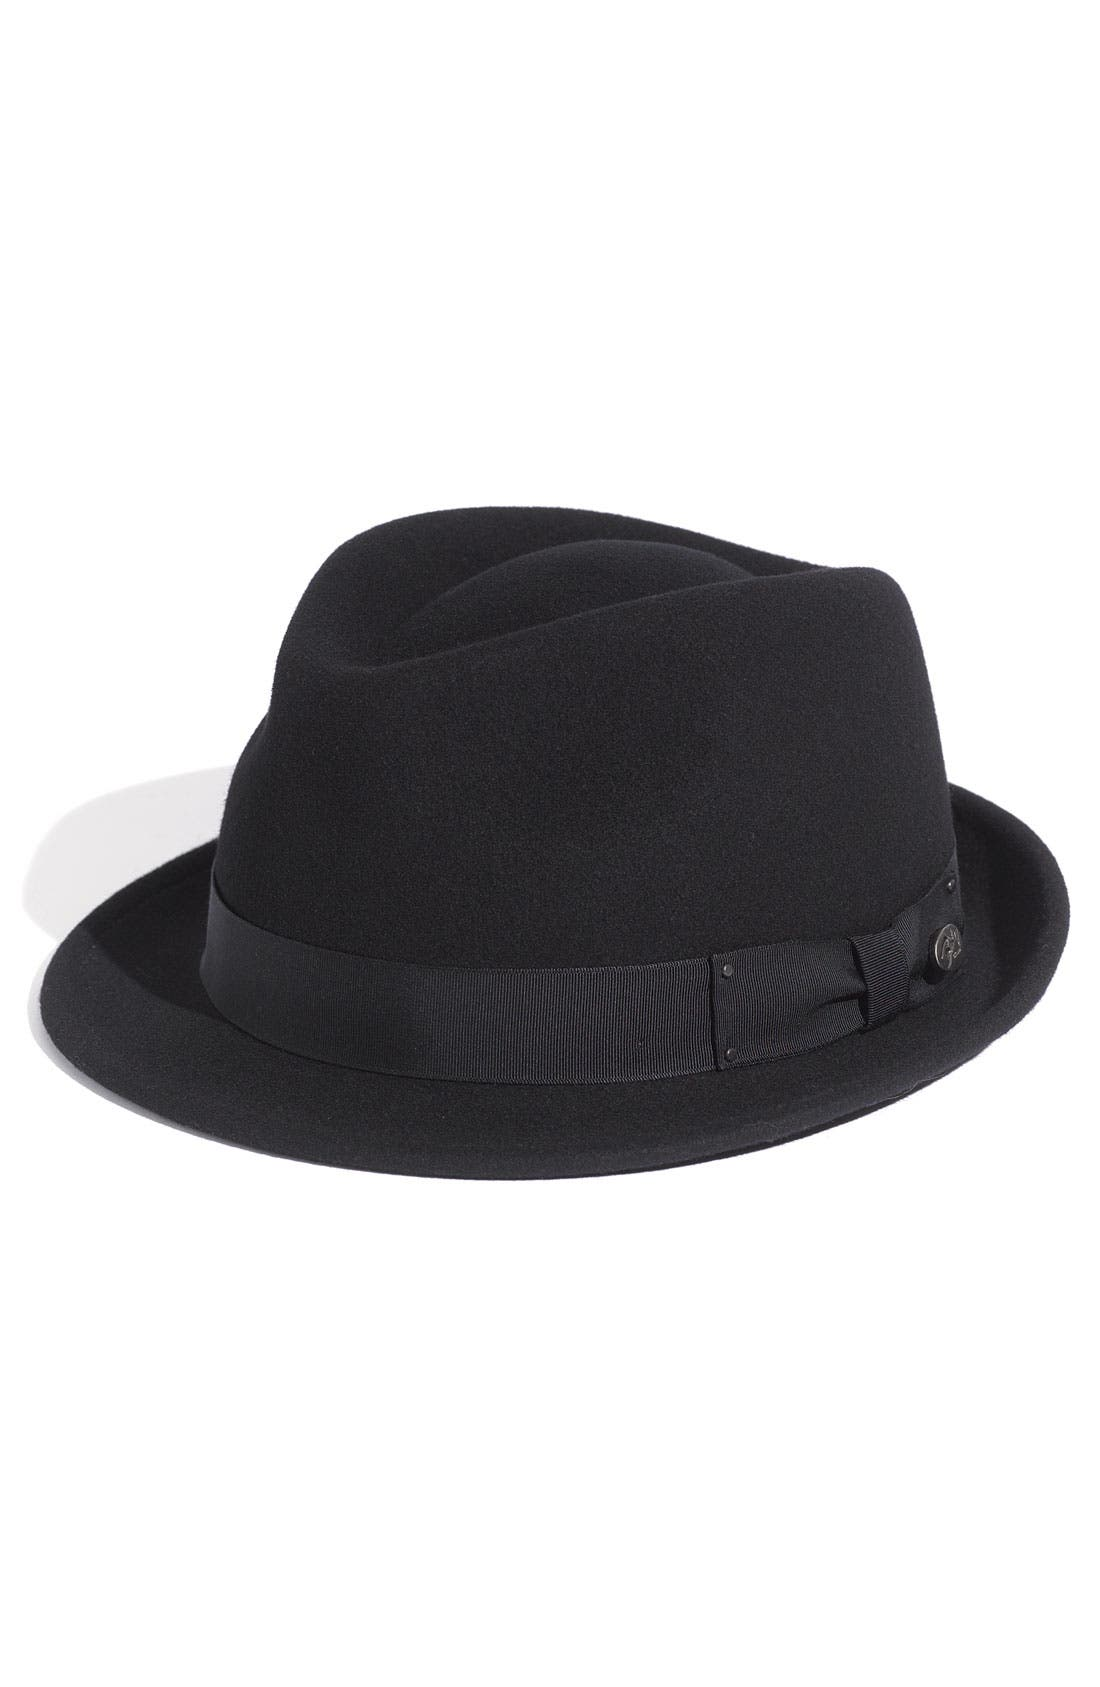 'Wynn' Packable Fedora,                             Main thumbnail 1, color,                             Black